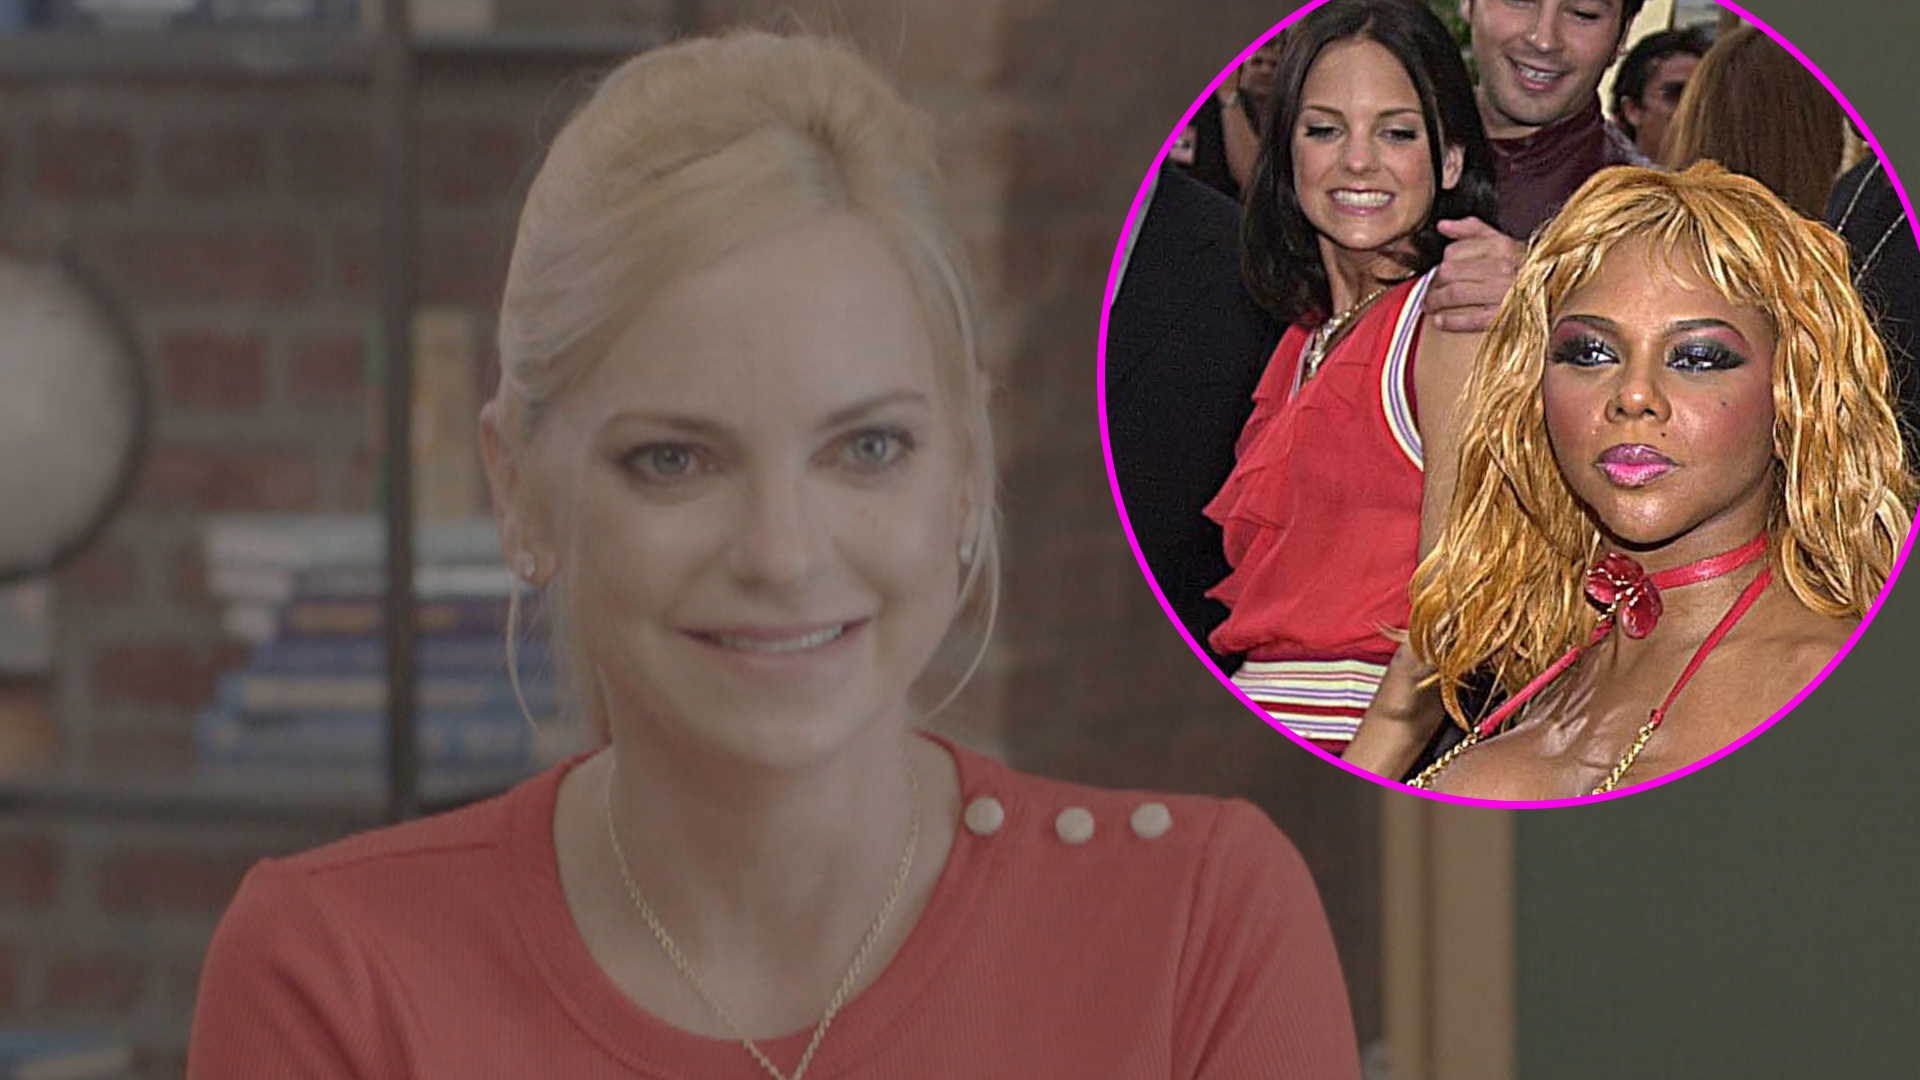 Anna Faris Is Dying To Have Lil' Kim on Her Podcast: Why